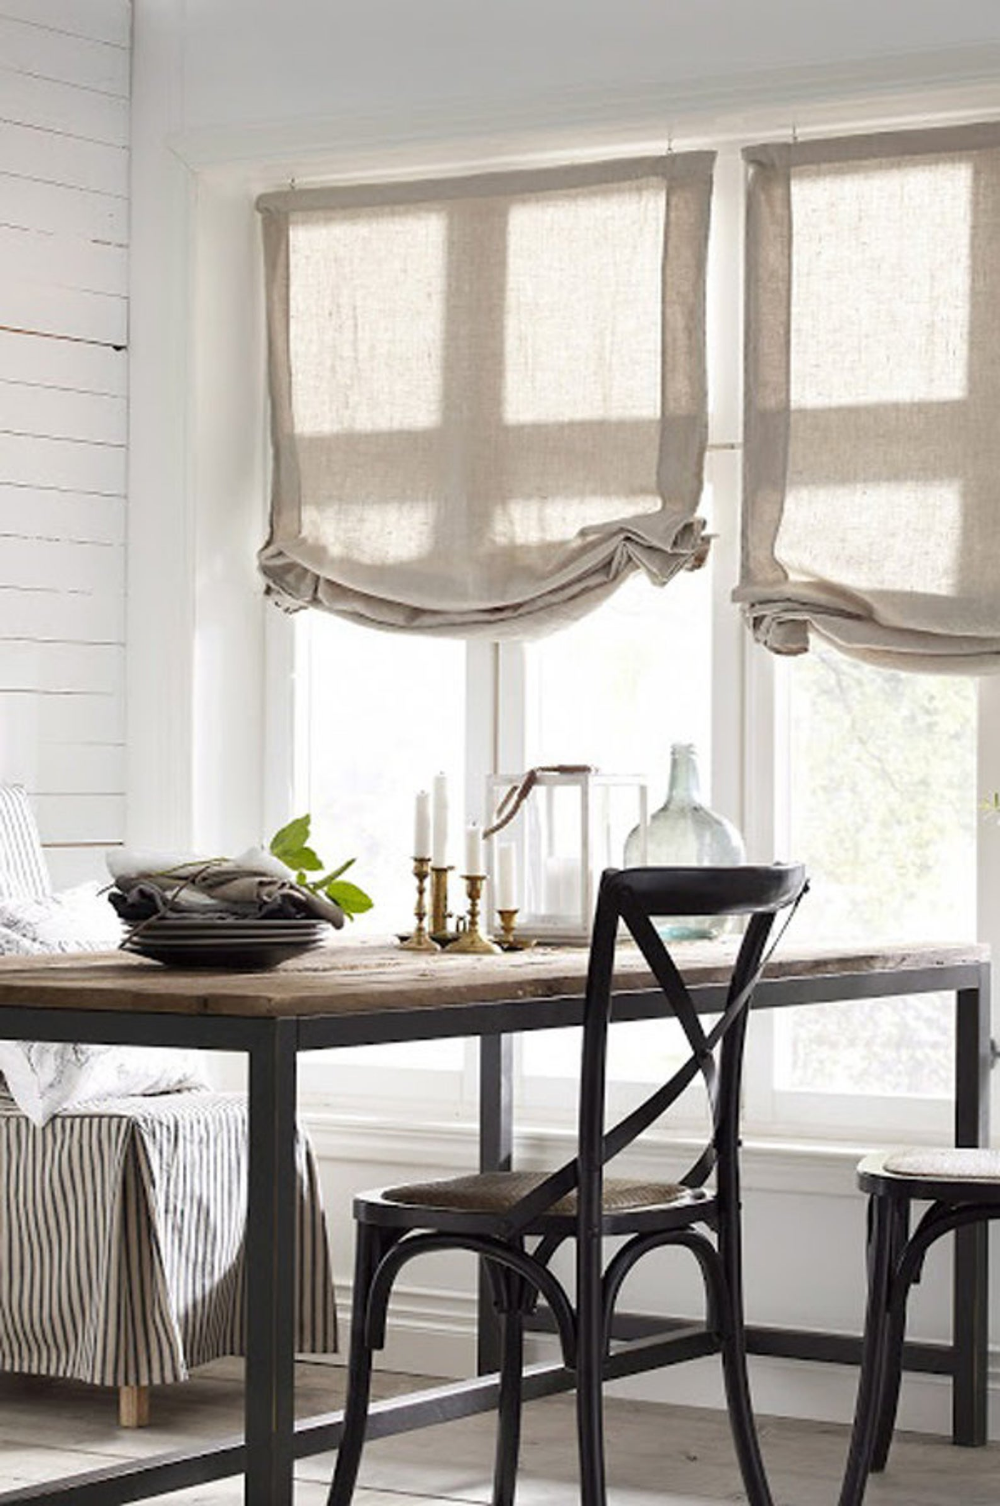 European Relaxed Sheer Roman Shade With Chain Mechanism Custom Faux Linen Roman Shades Window Treatments Custom Sizes In 2021 Dining Room Window Treatments Dining Room Curtains Dining Room Windows